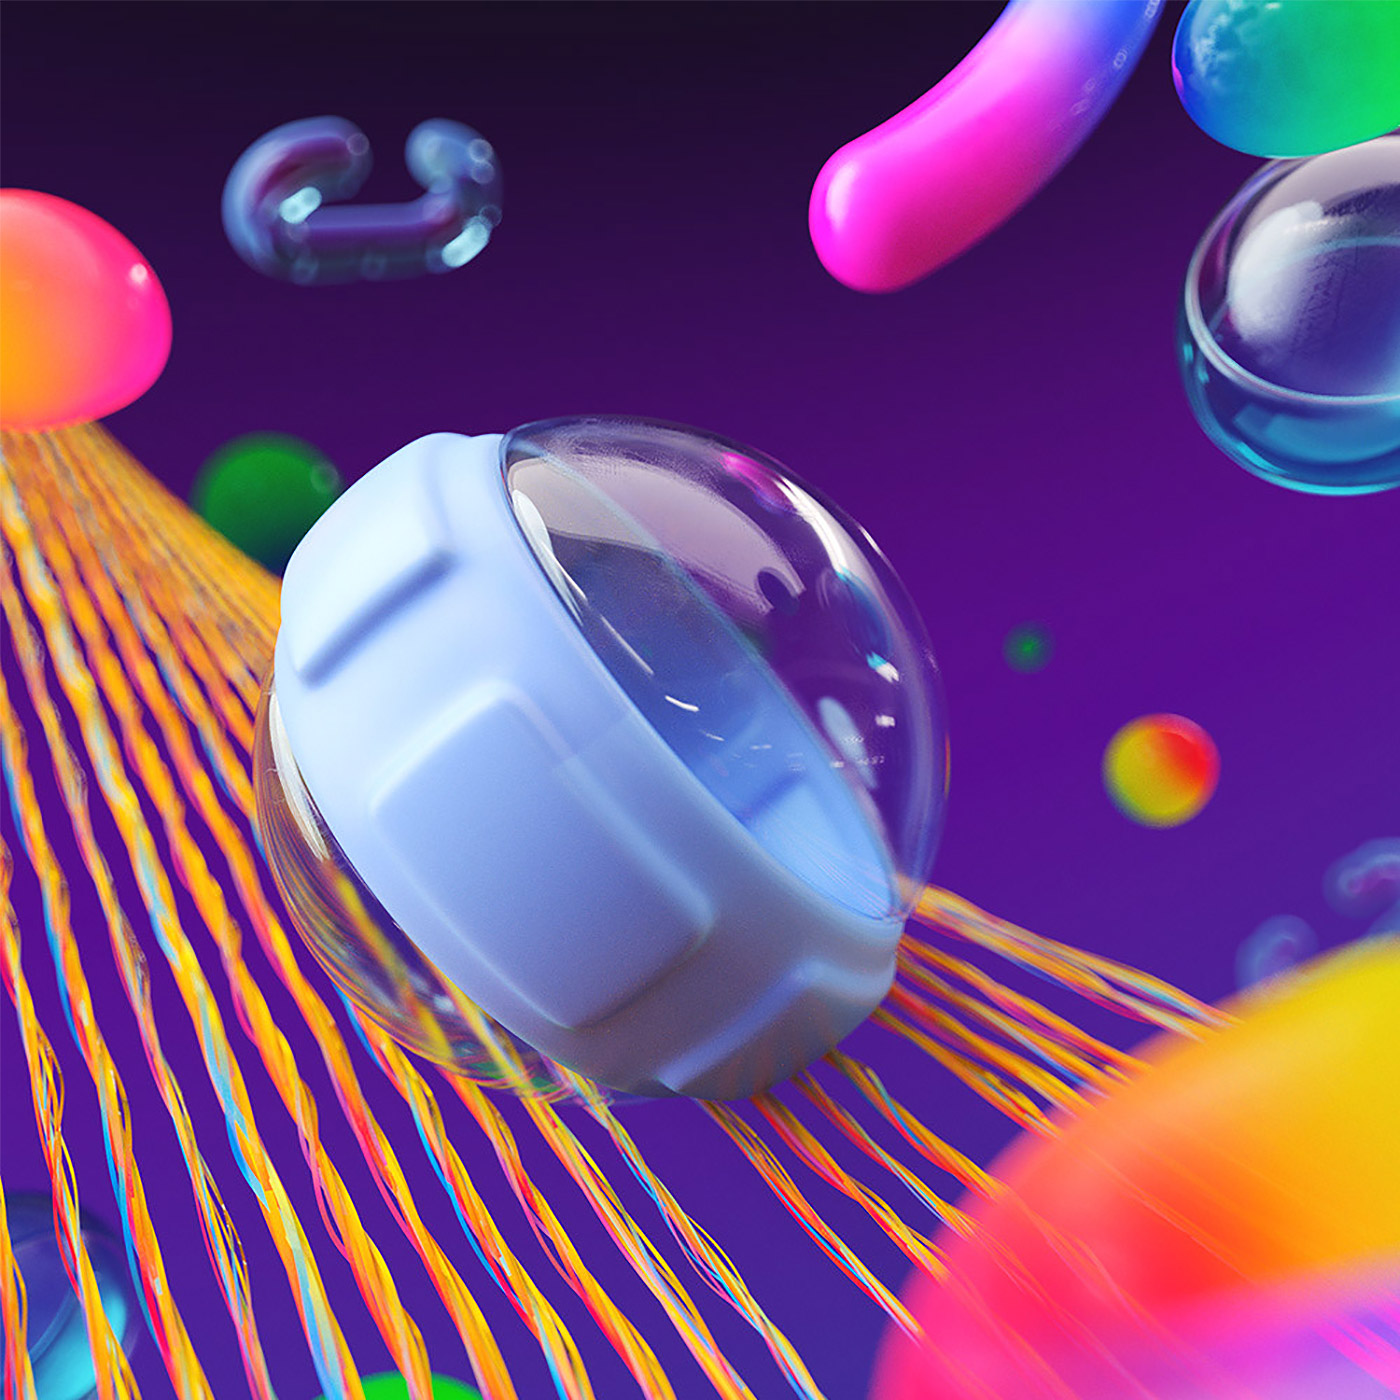 sencillo Dificil seré fuerte  Nike White Hot: Motion Graphics & Art Direction by Buck | Daily design  inspiration for creatives | Inspiration Grid